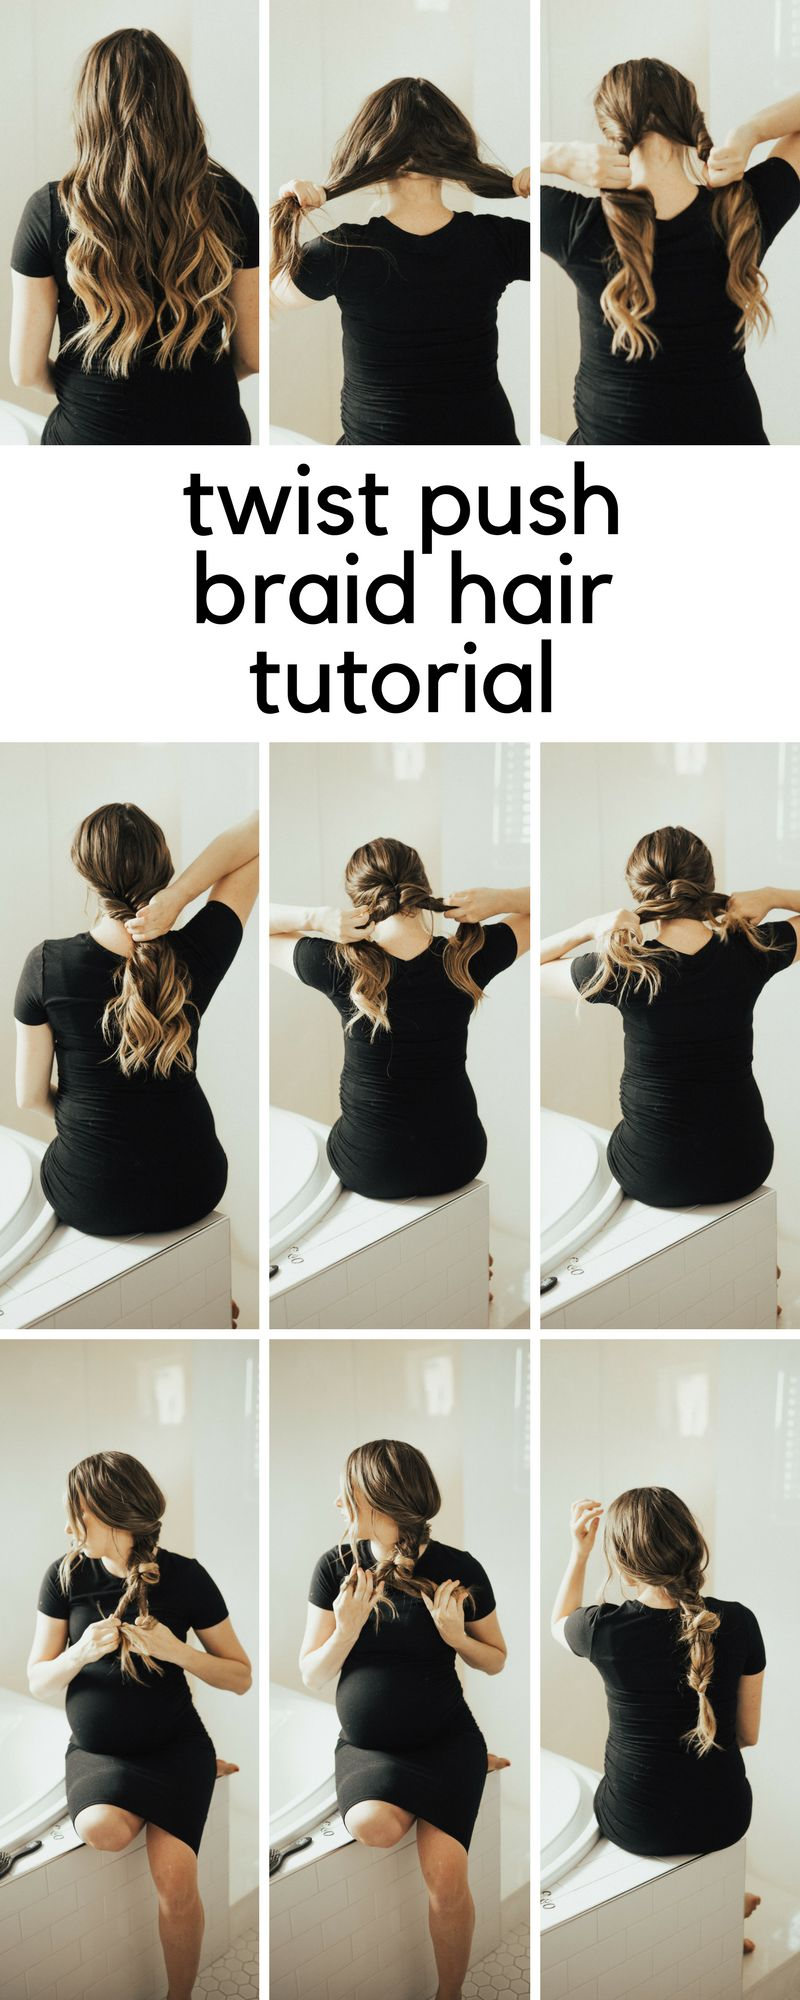 SAVE this right now! Utah Style Blogger Dani Marie is sharing her top simple braid ideas for long hair. #hairtutorial #easyhairstyle #ponytail #hairstyle #danimarie